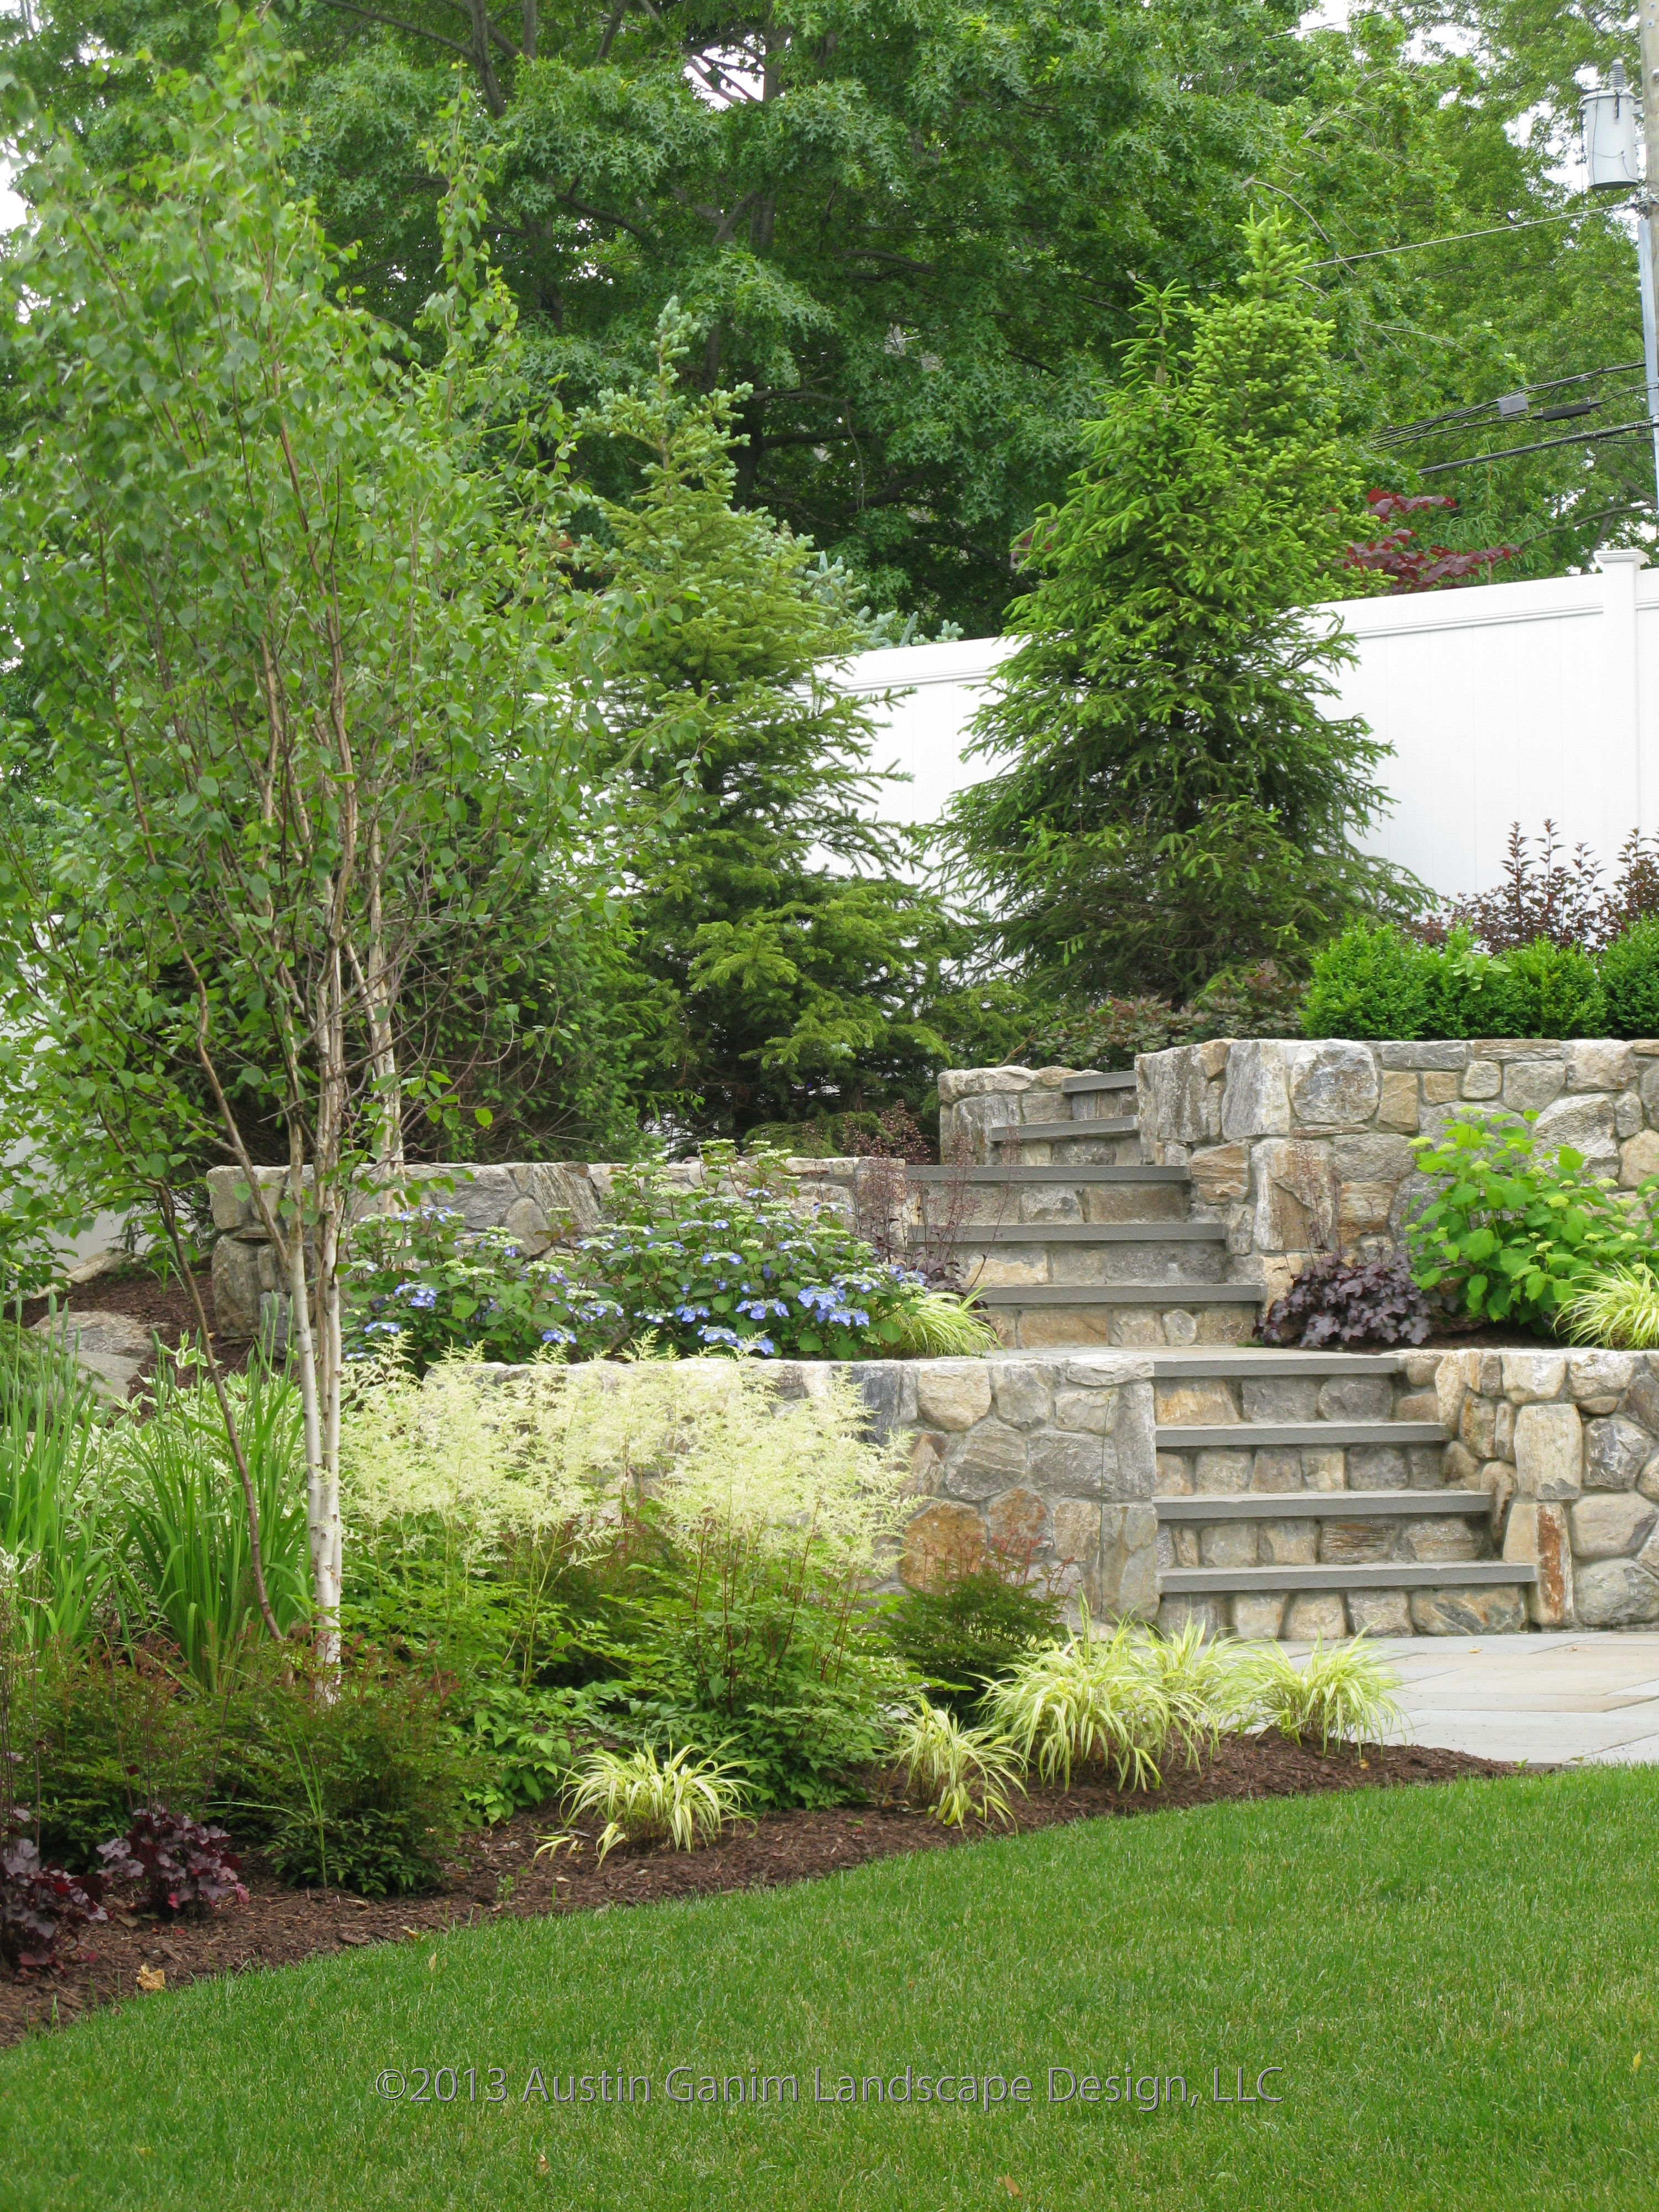 Pin By Austin Ganim Landscape Design On Beach Area Garden With A Touch Of Woodland Elements Birch Trees Landscaping Birch Trees Garden Steep Gardens